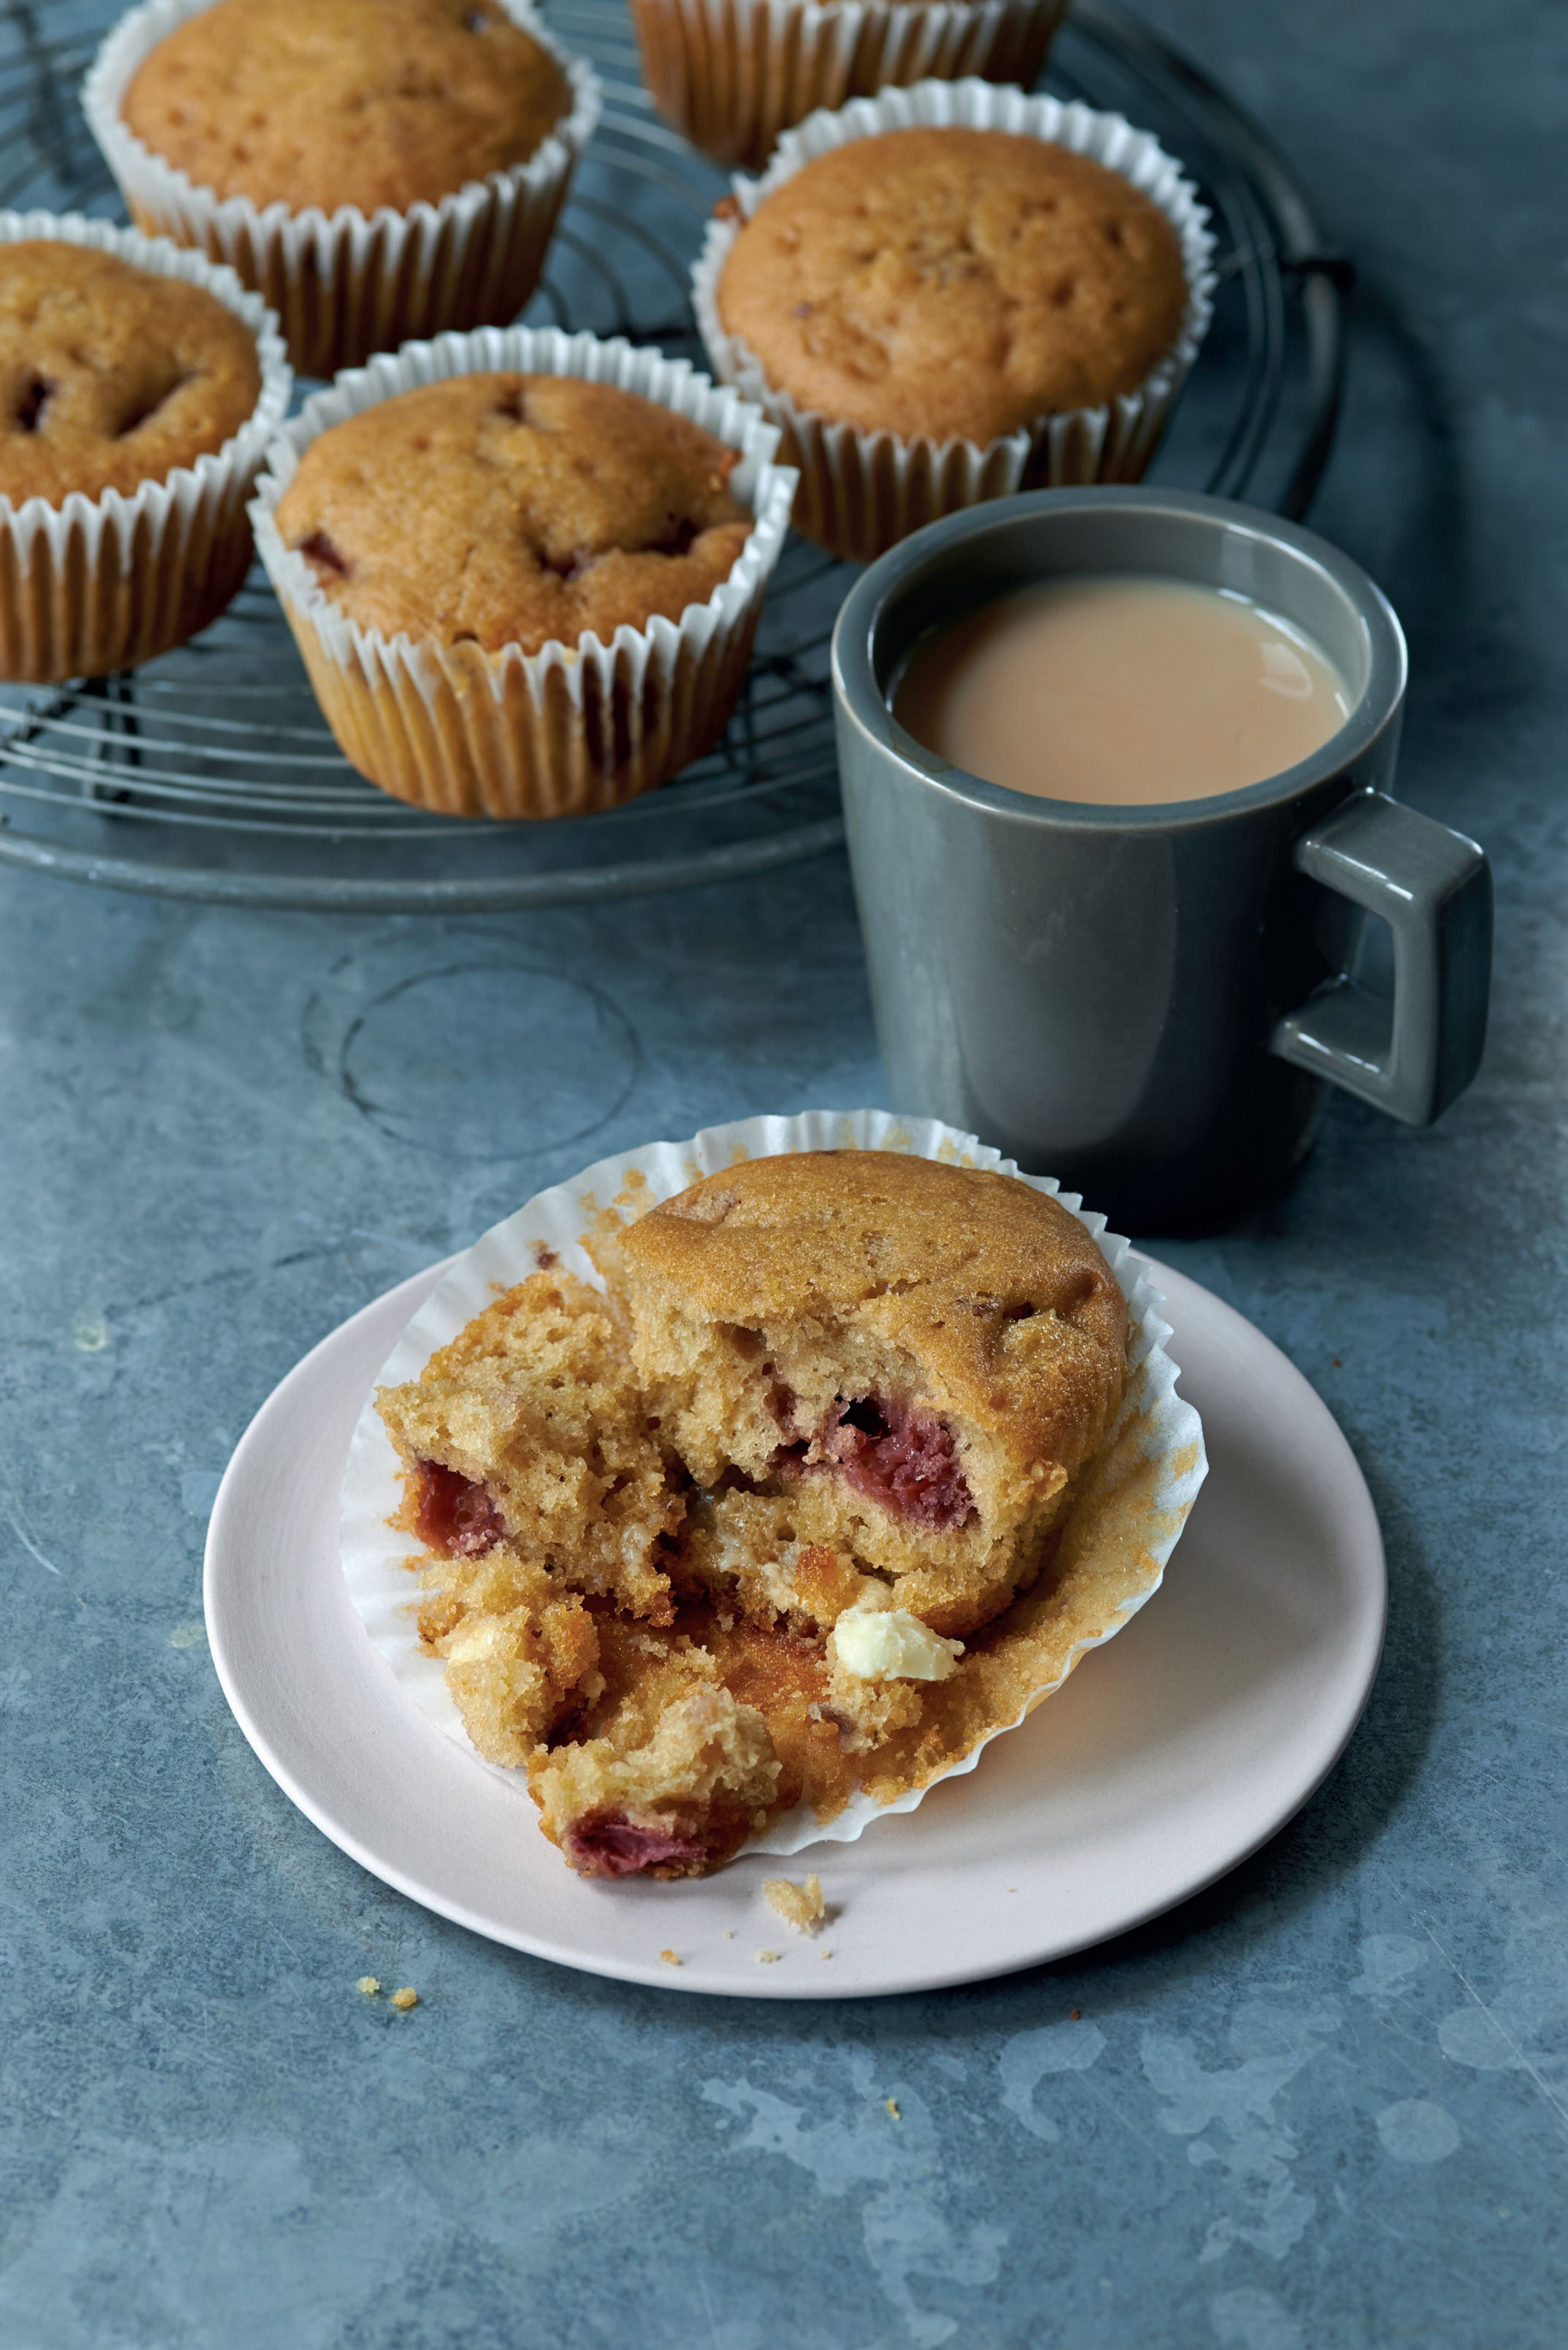 White chocolate and strawberry muffins